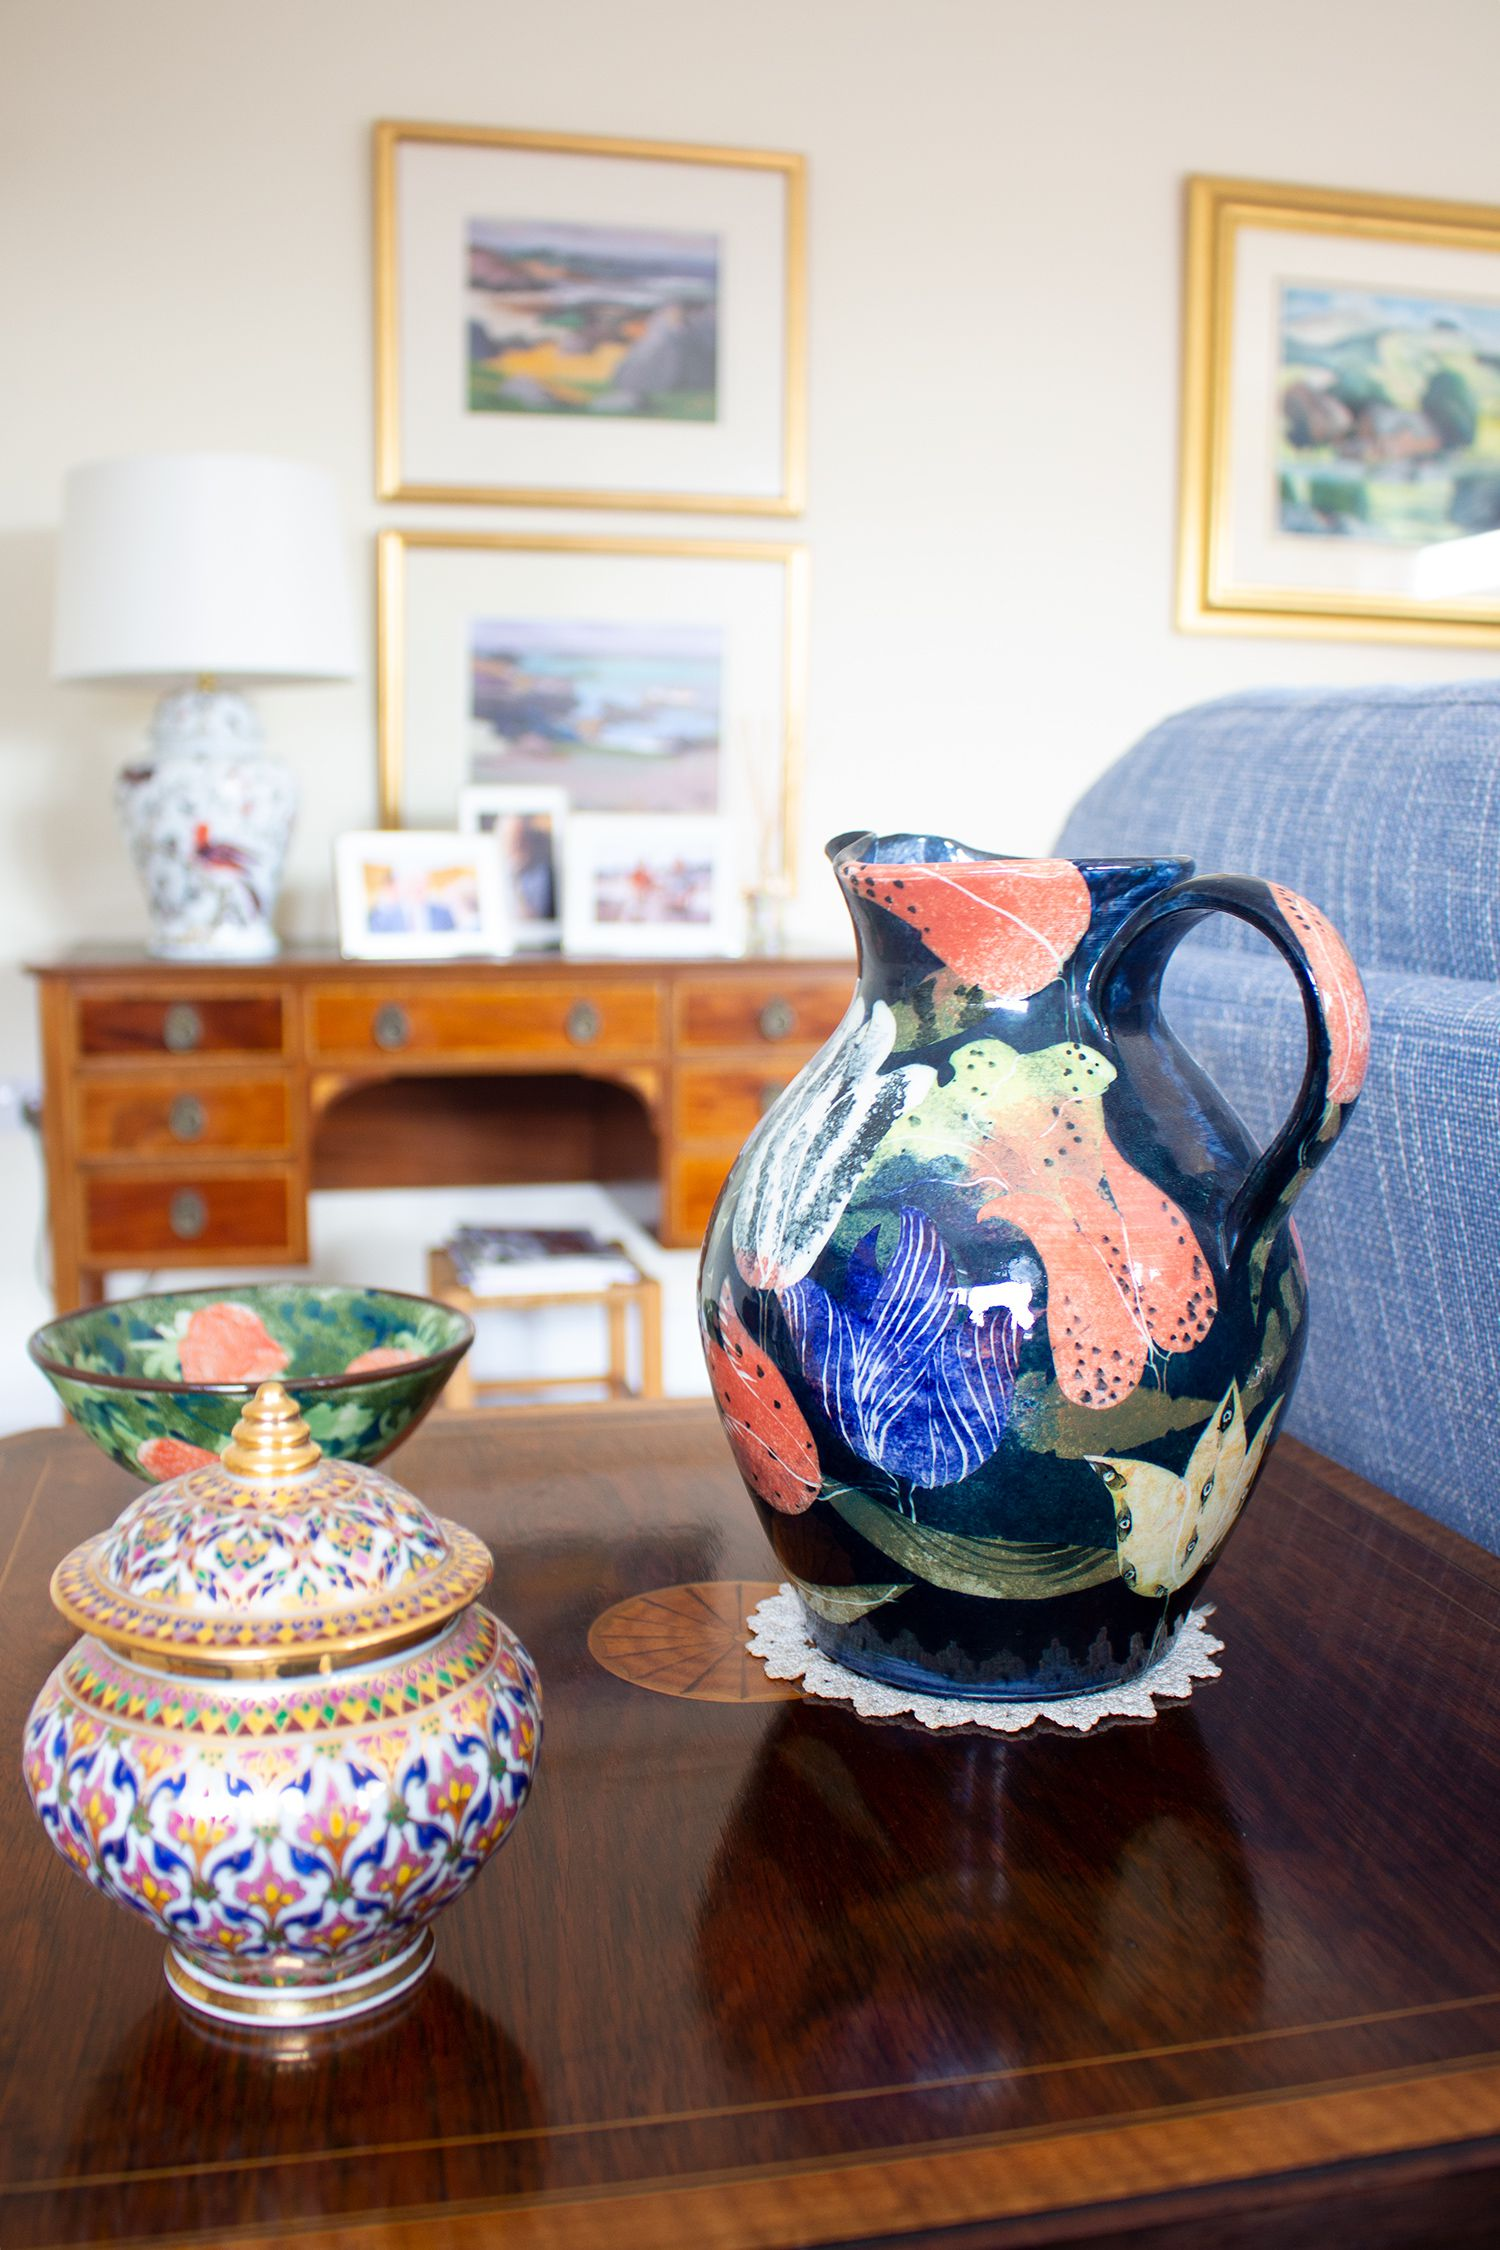 A close up of a colourful blue and red painted jug, on an end table behind the newly upholstered sofa.